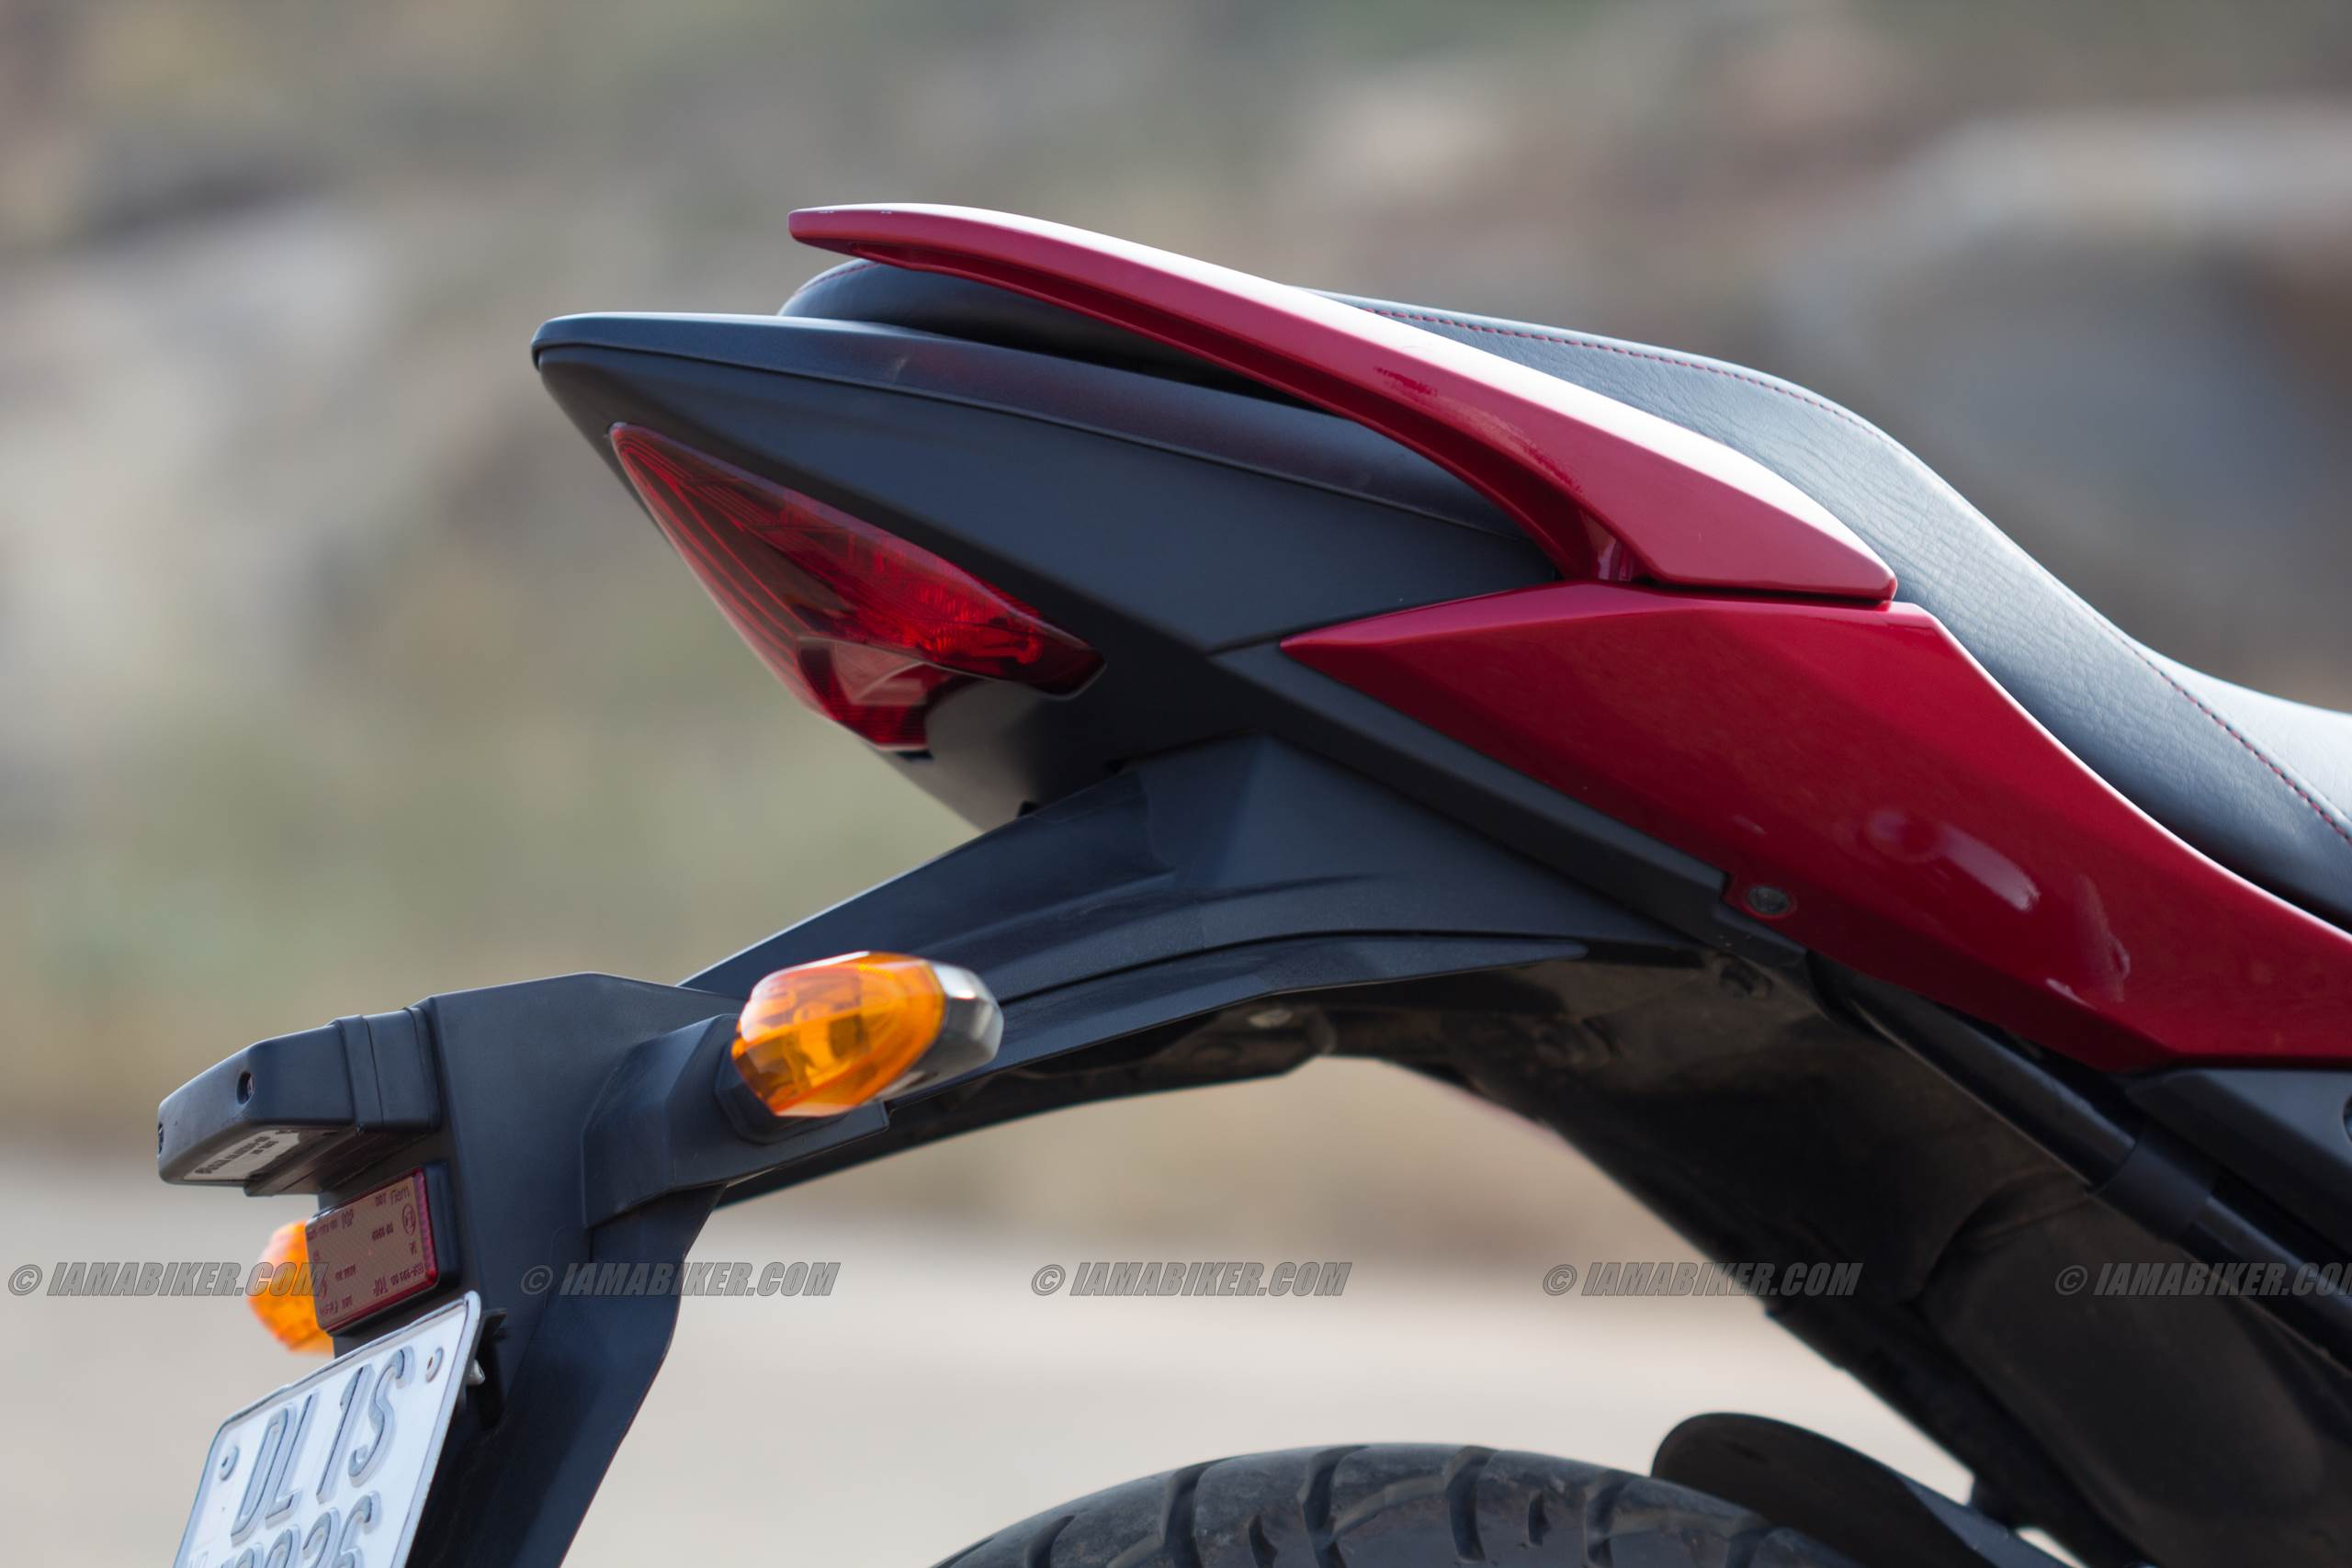 suzuki gixxer 155 tail section